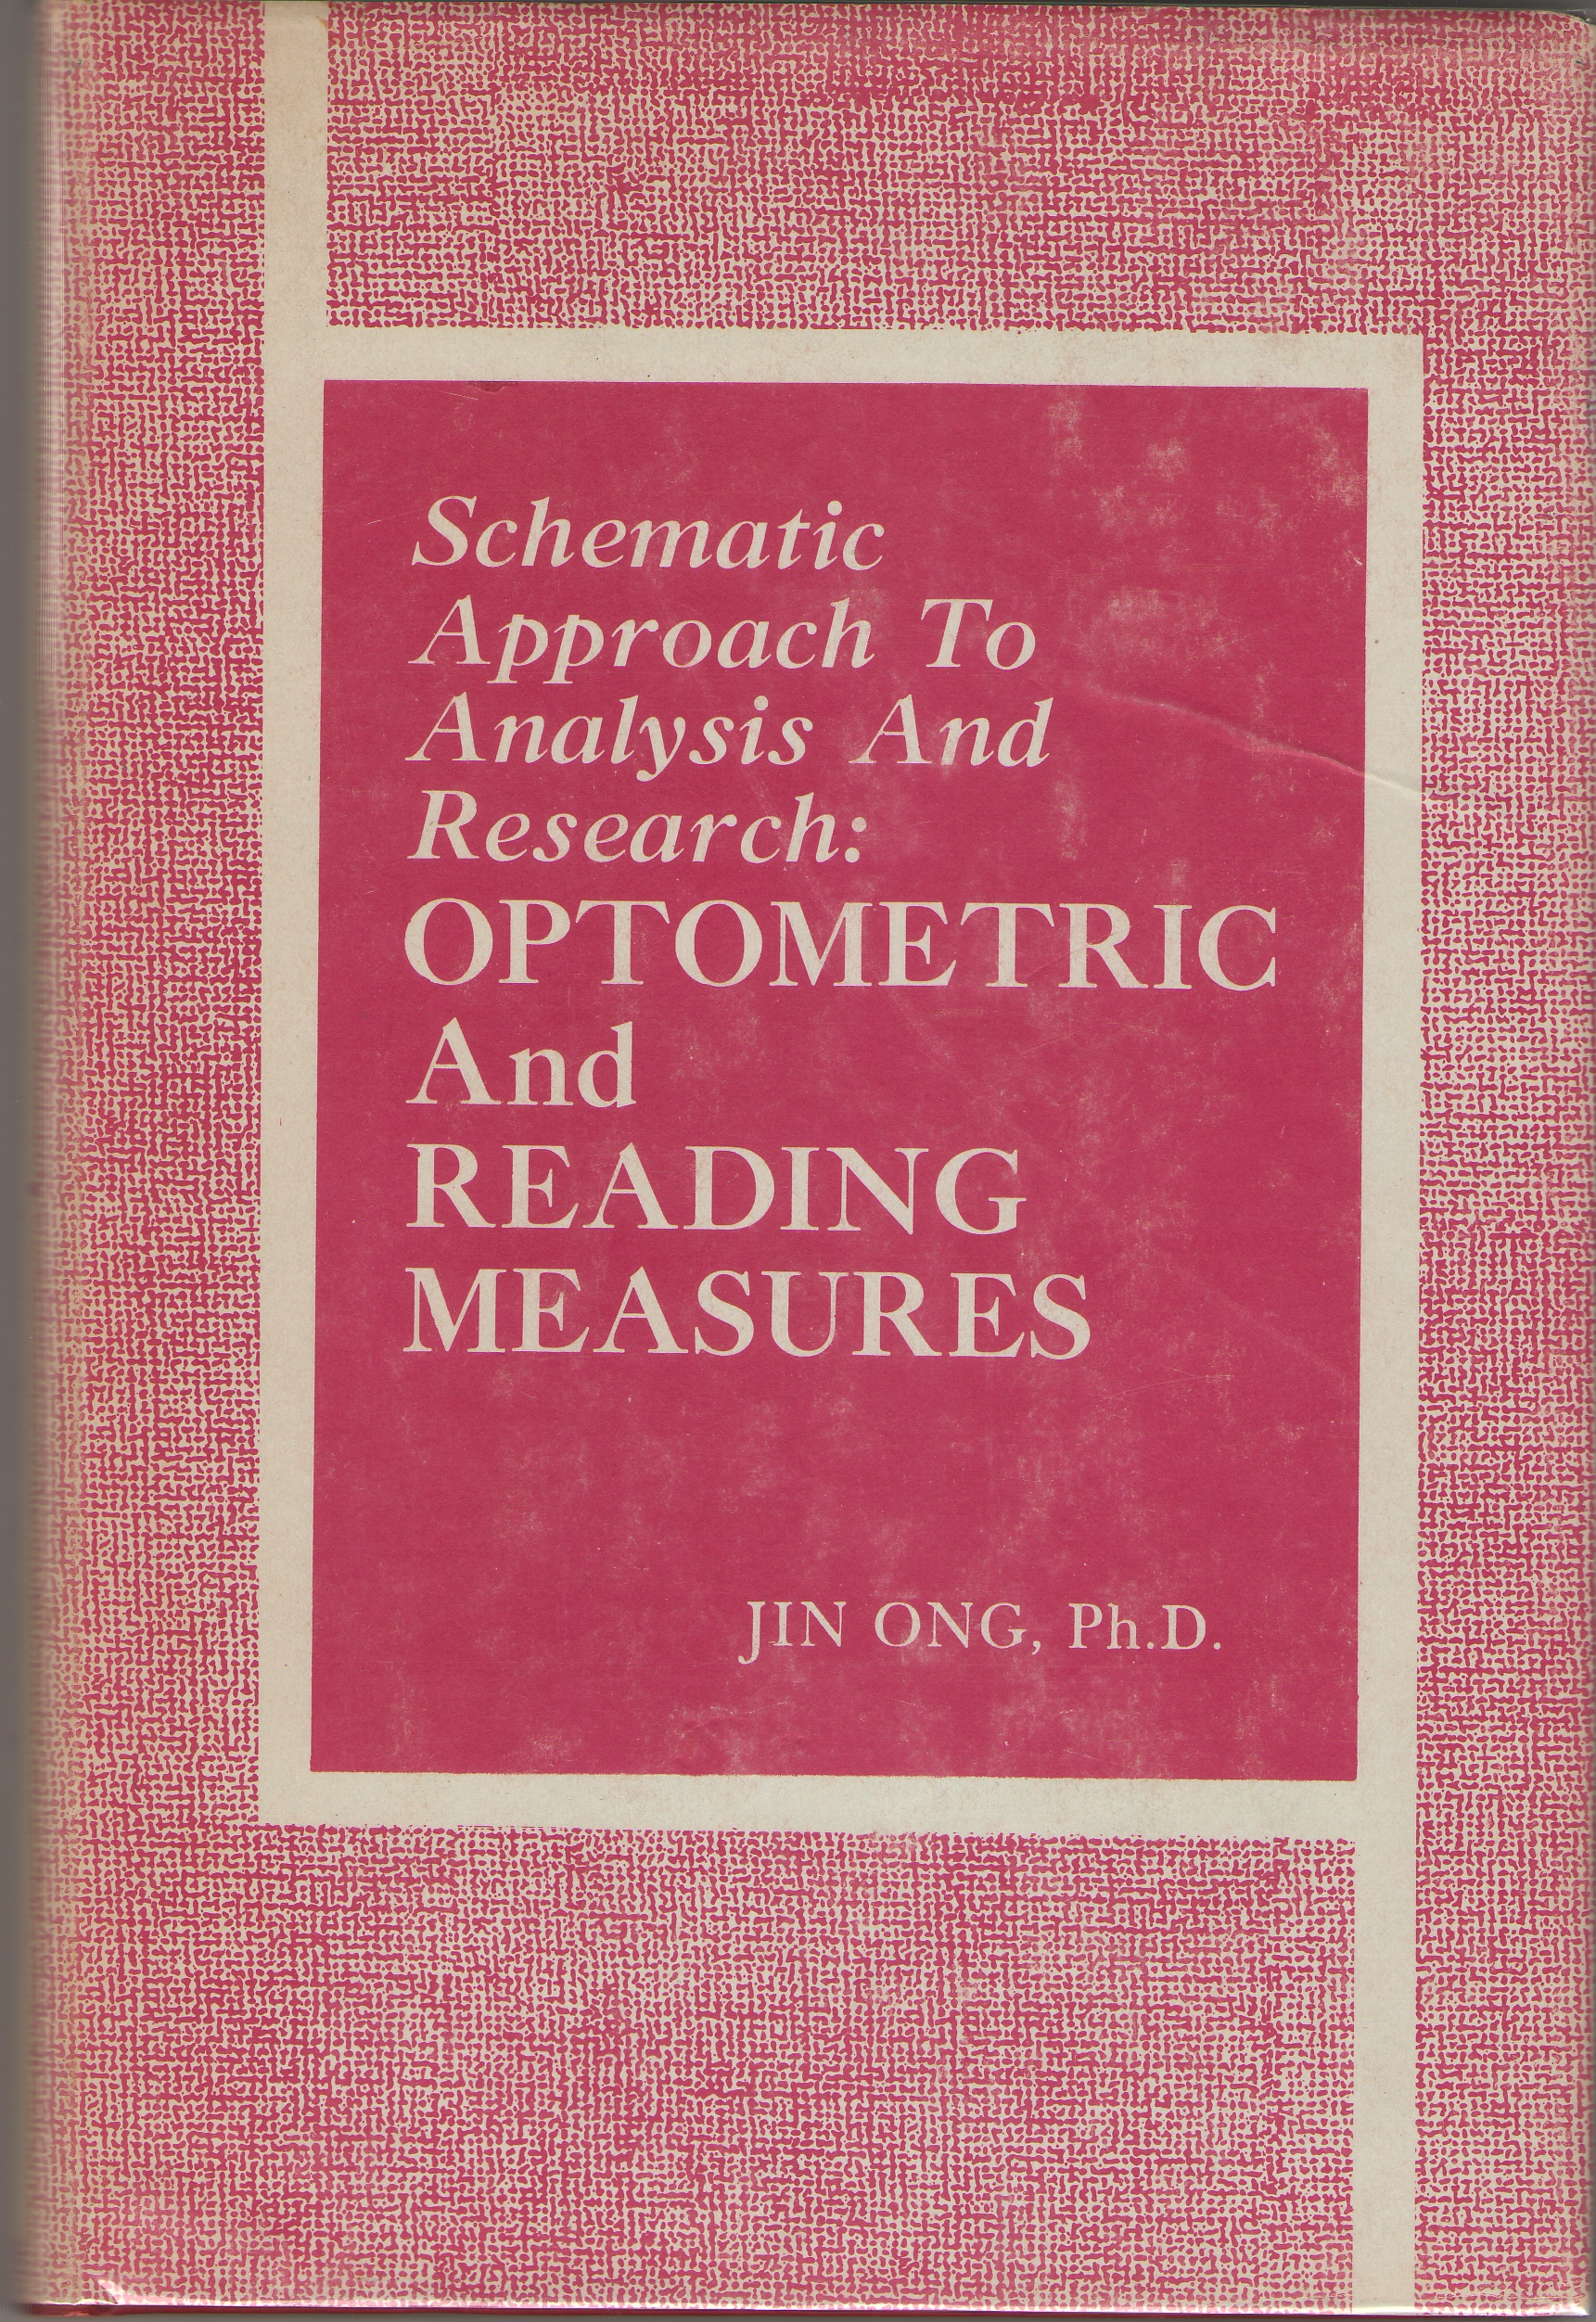 Schematic Approach To Analysis And Research: Optometric And Reading Measures, Ong, Jin